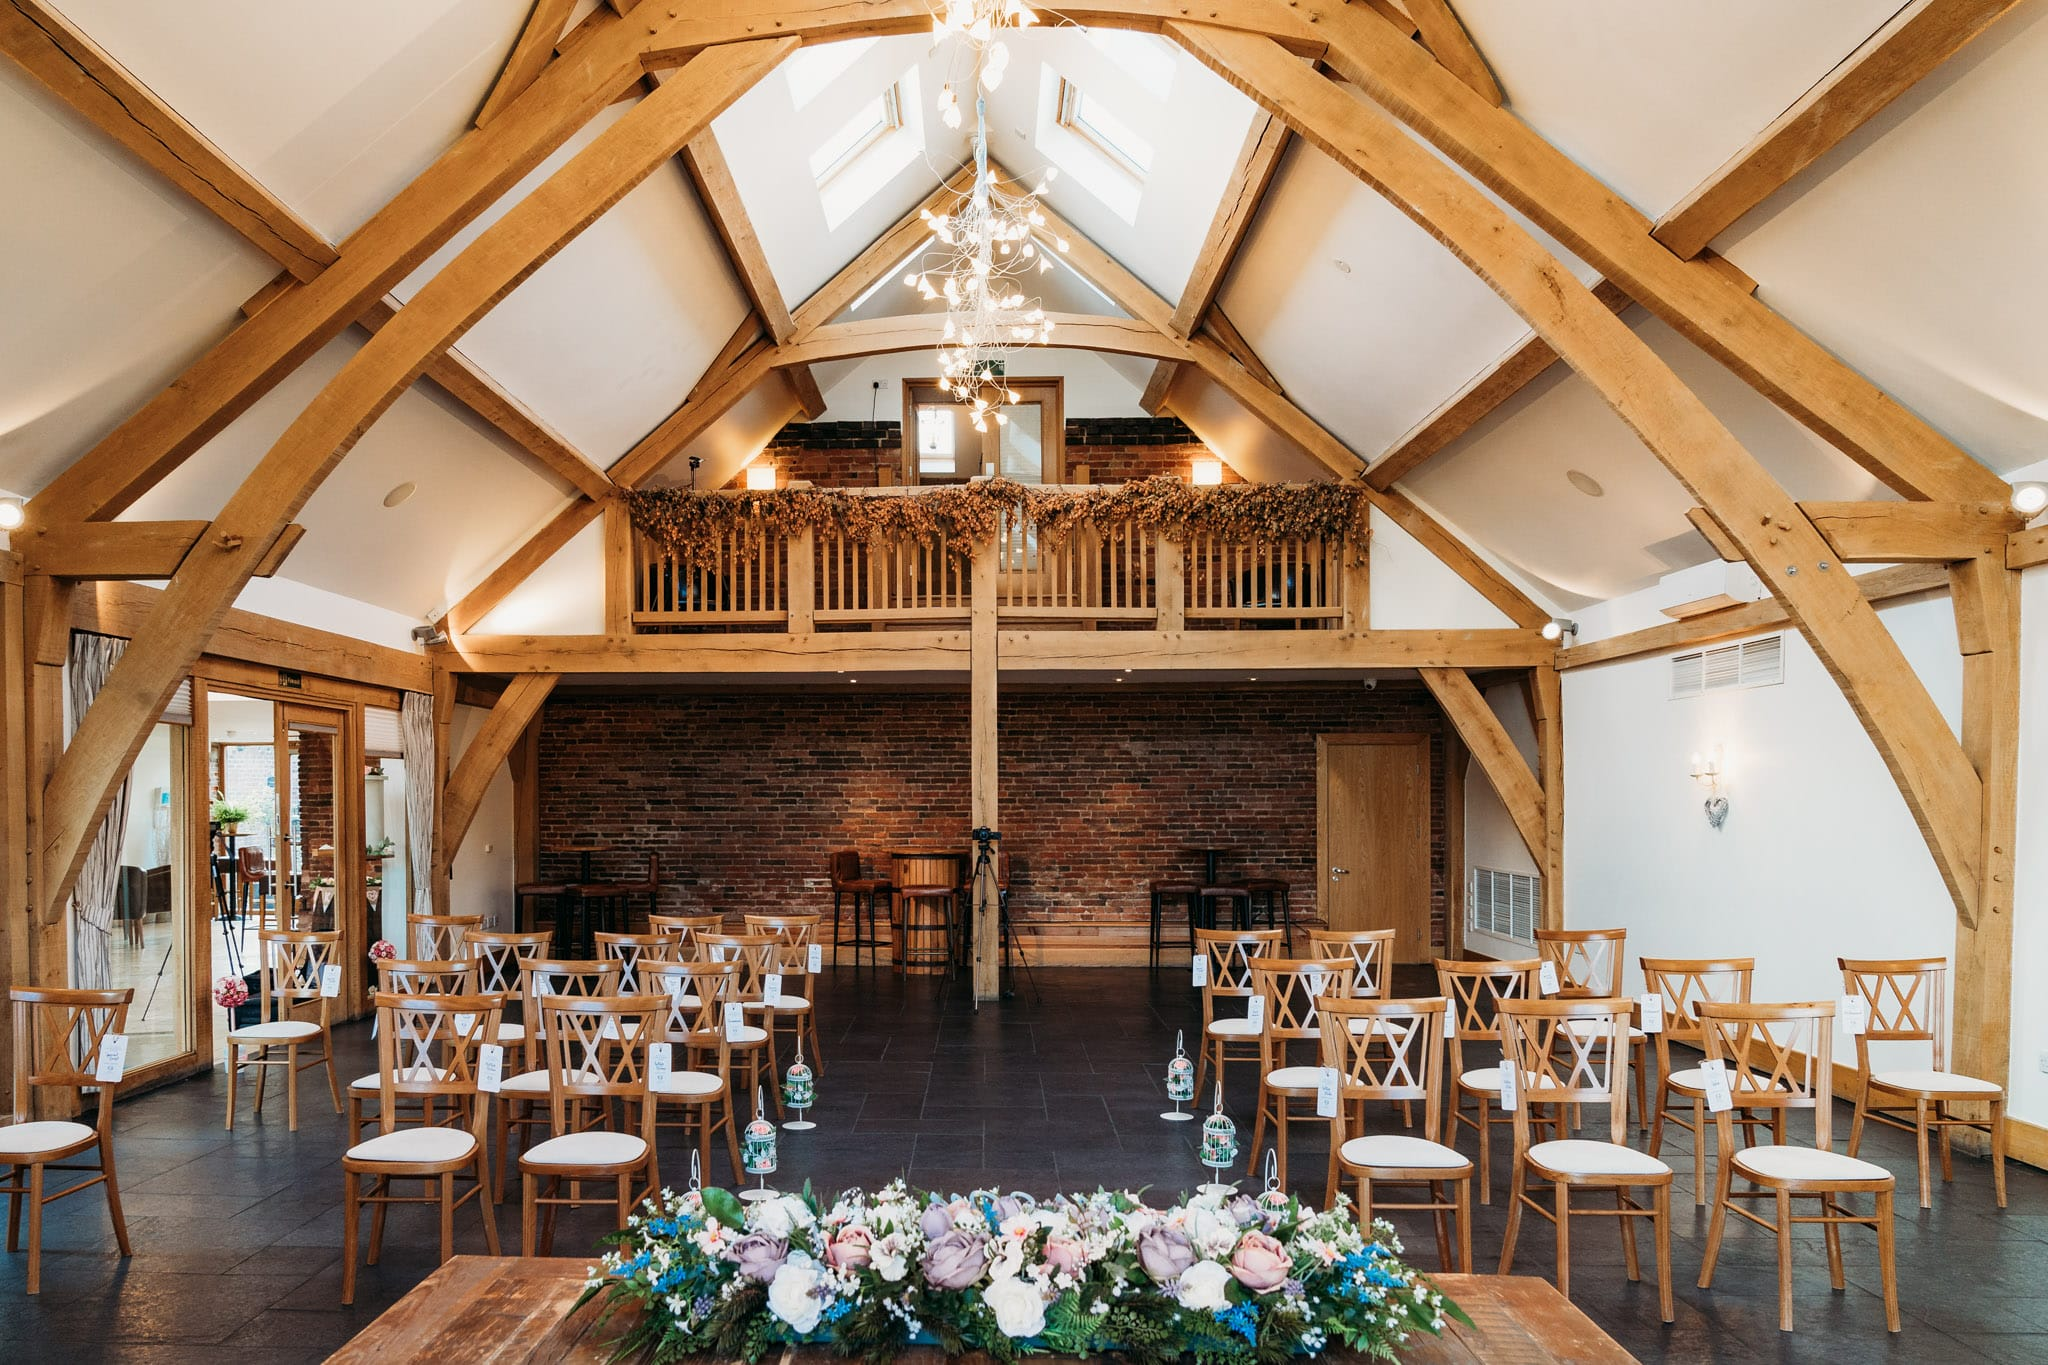 The Oak Room at Mythe Barn set up for a wedding ceremony